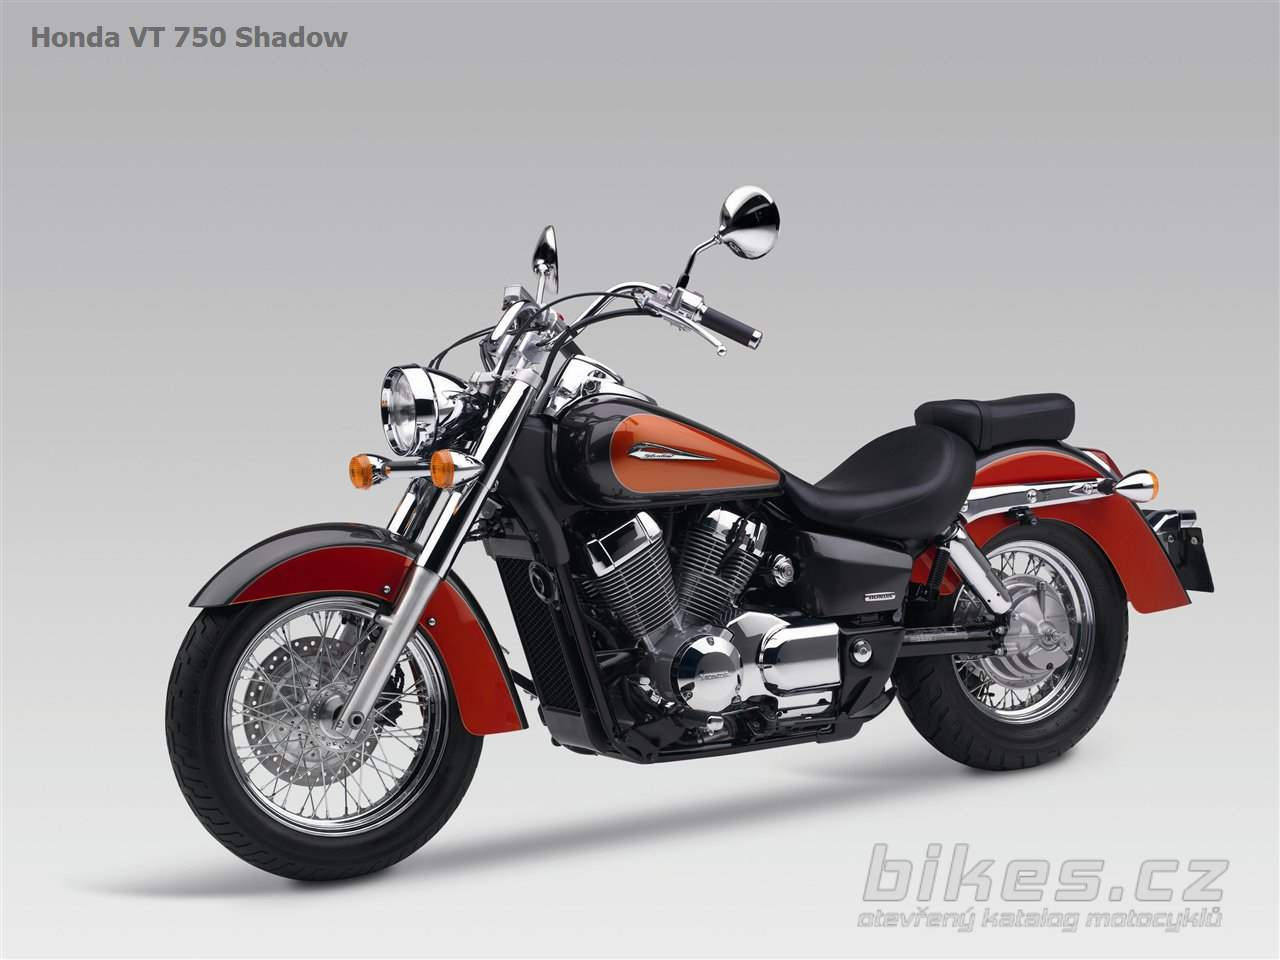 honda vt 750 shadow 2011 n zory motork technick parametry servisn manu ly honda vt 750. Black Bedroom Furniture Sets. Home Design Ideas